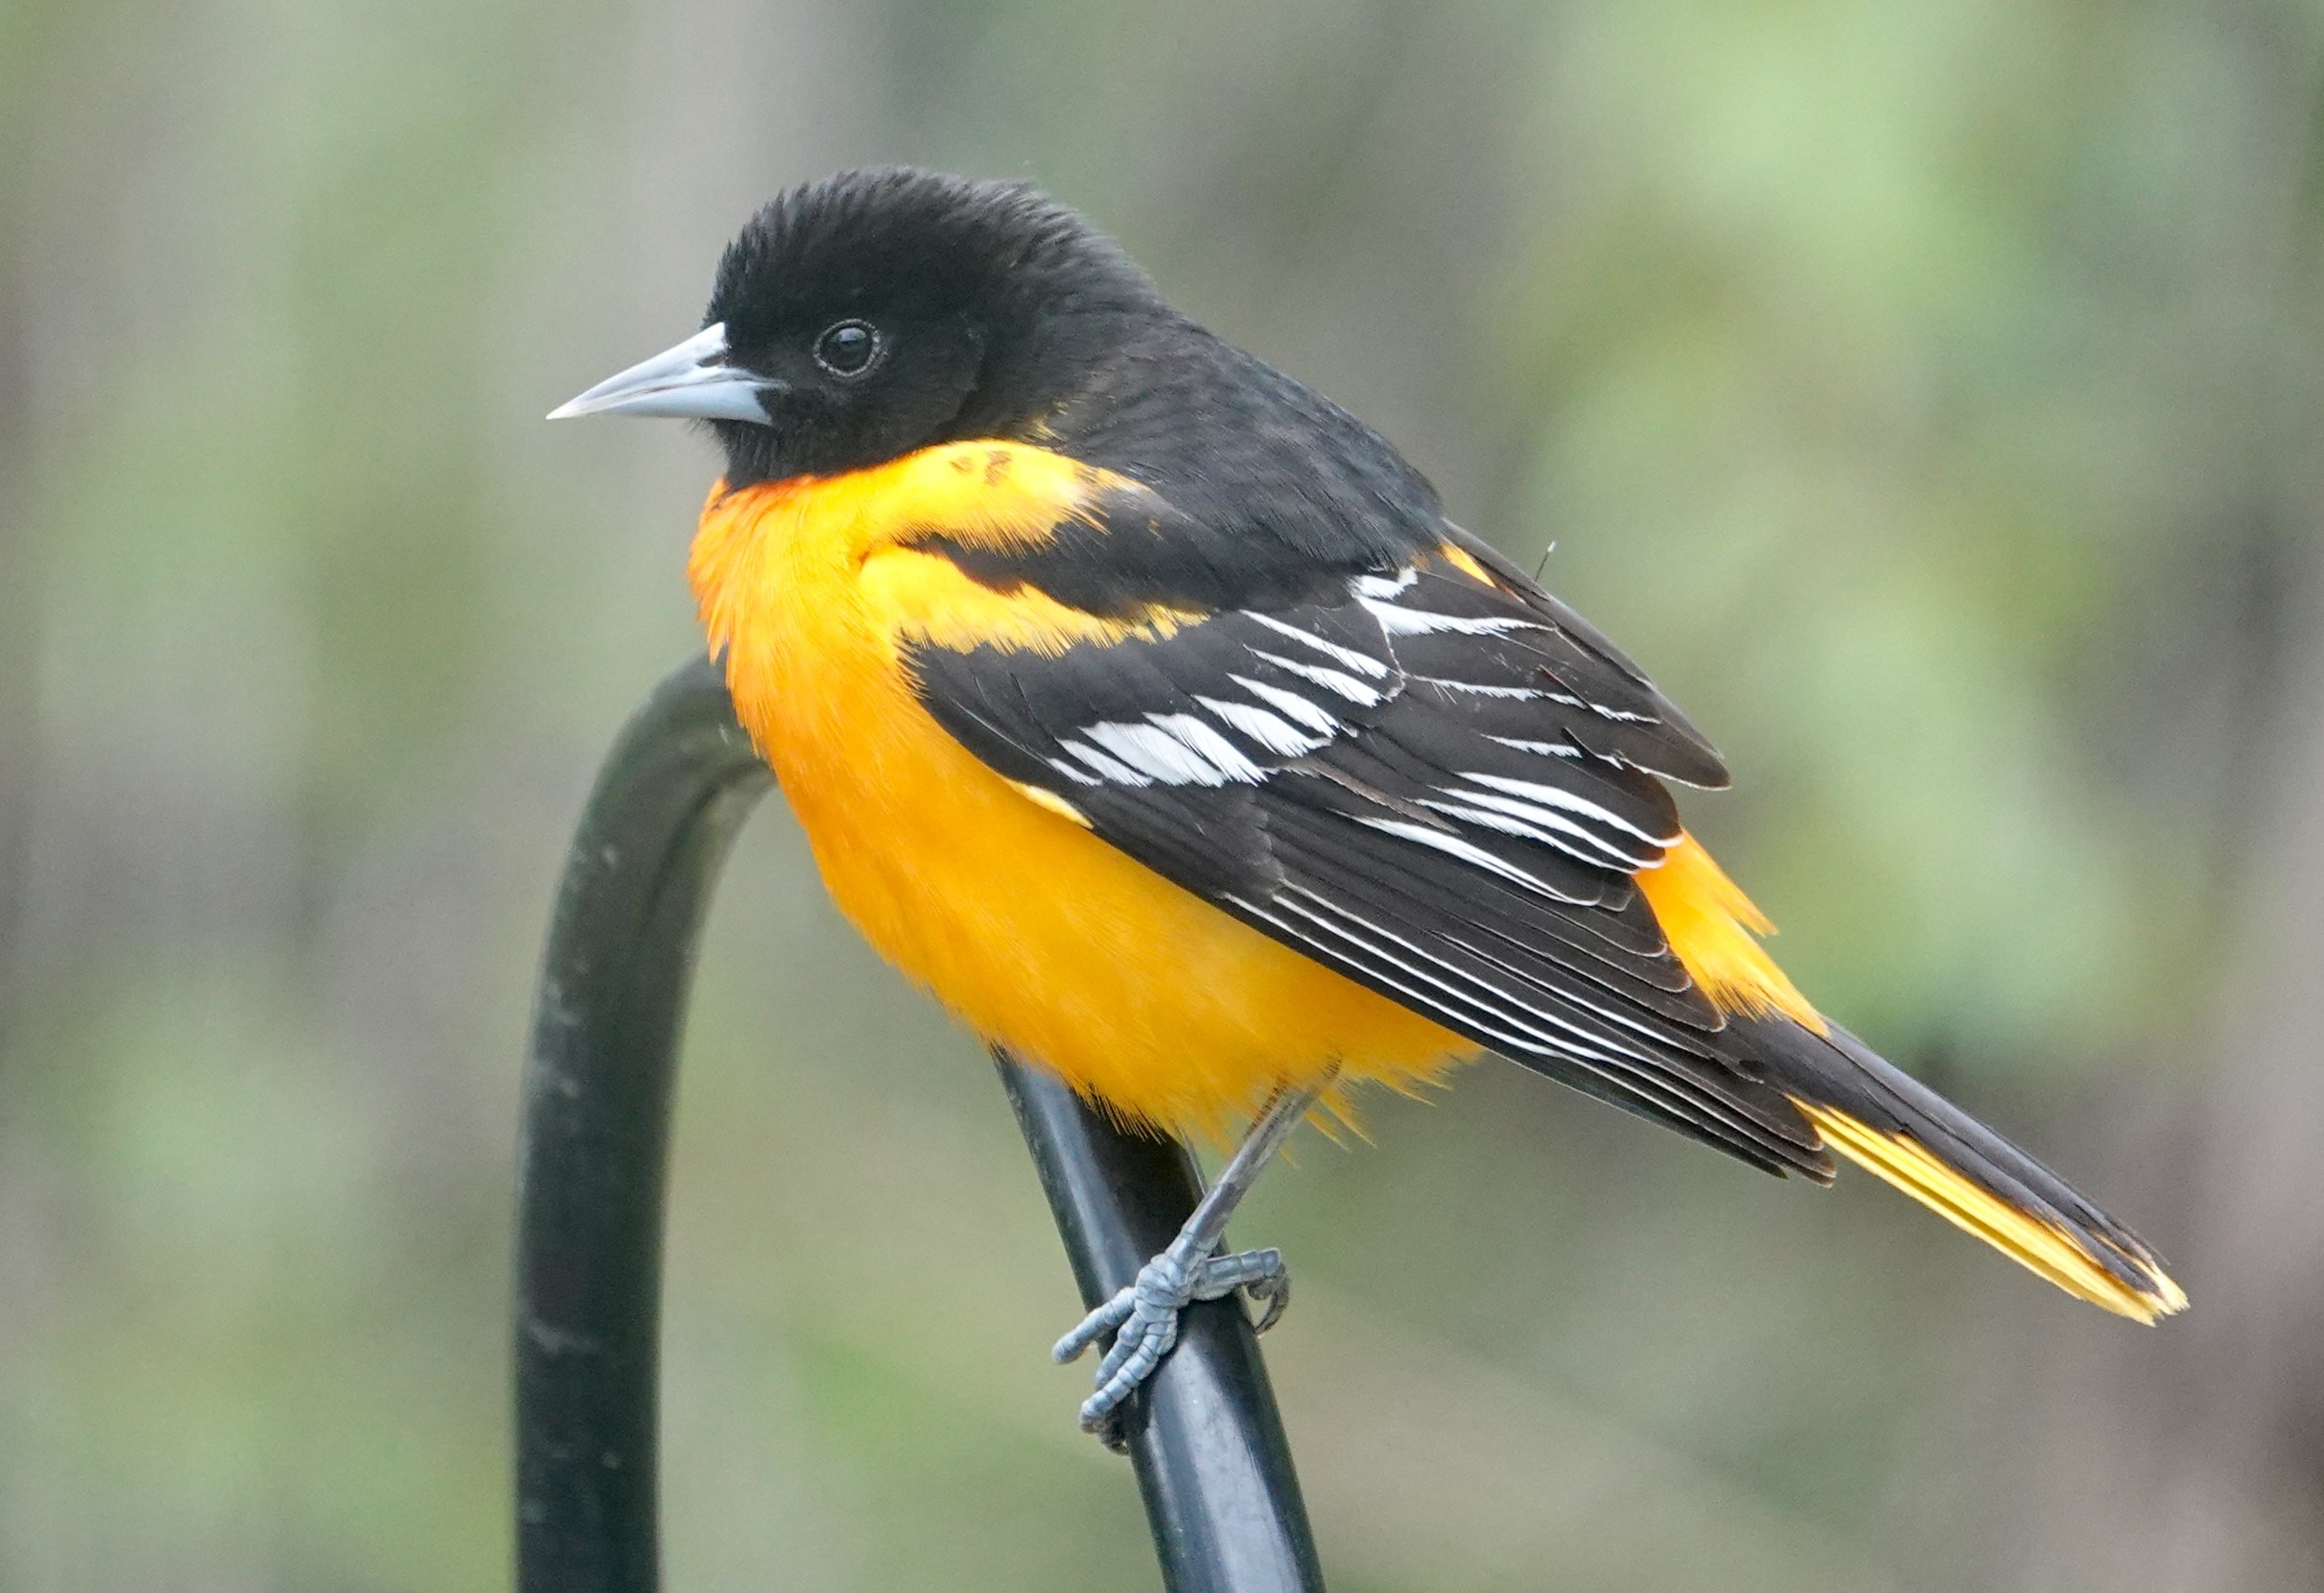 This Baltimore oriole has never played against the Minnesota Twins.